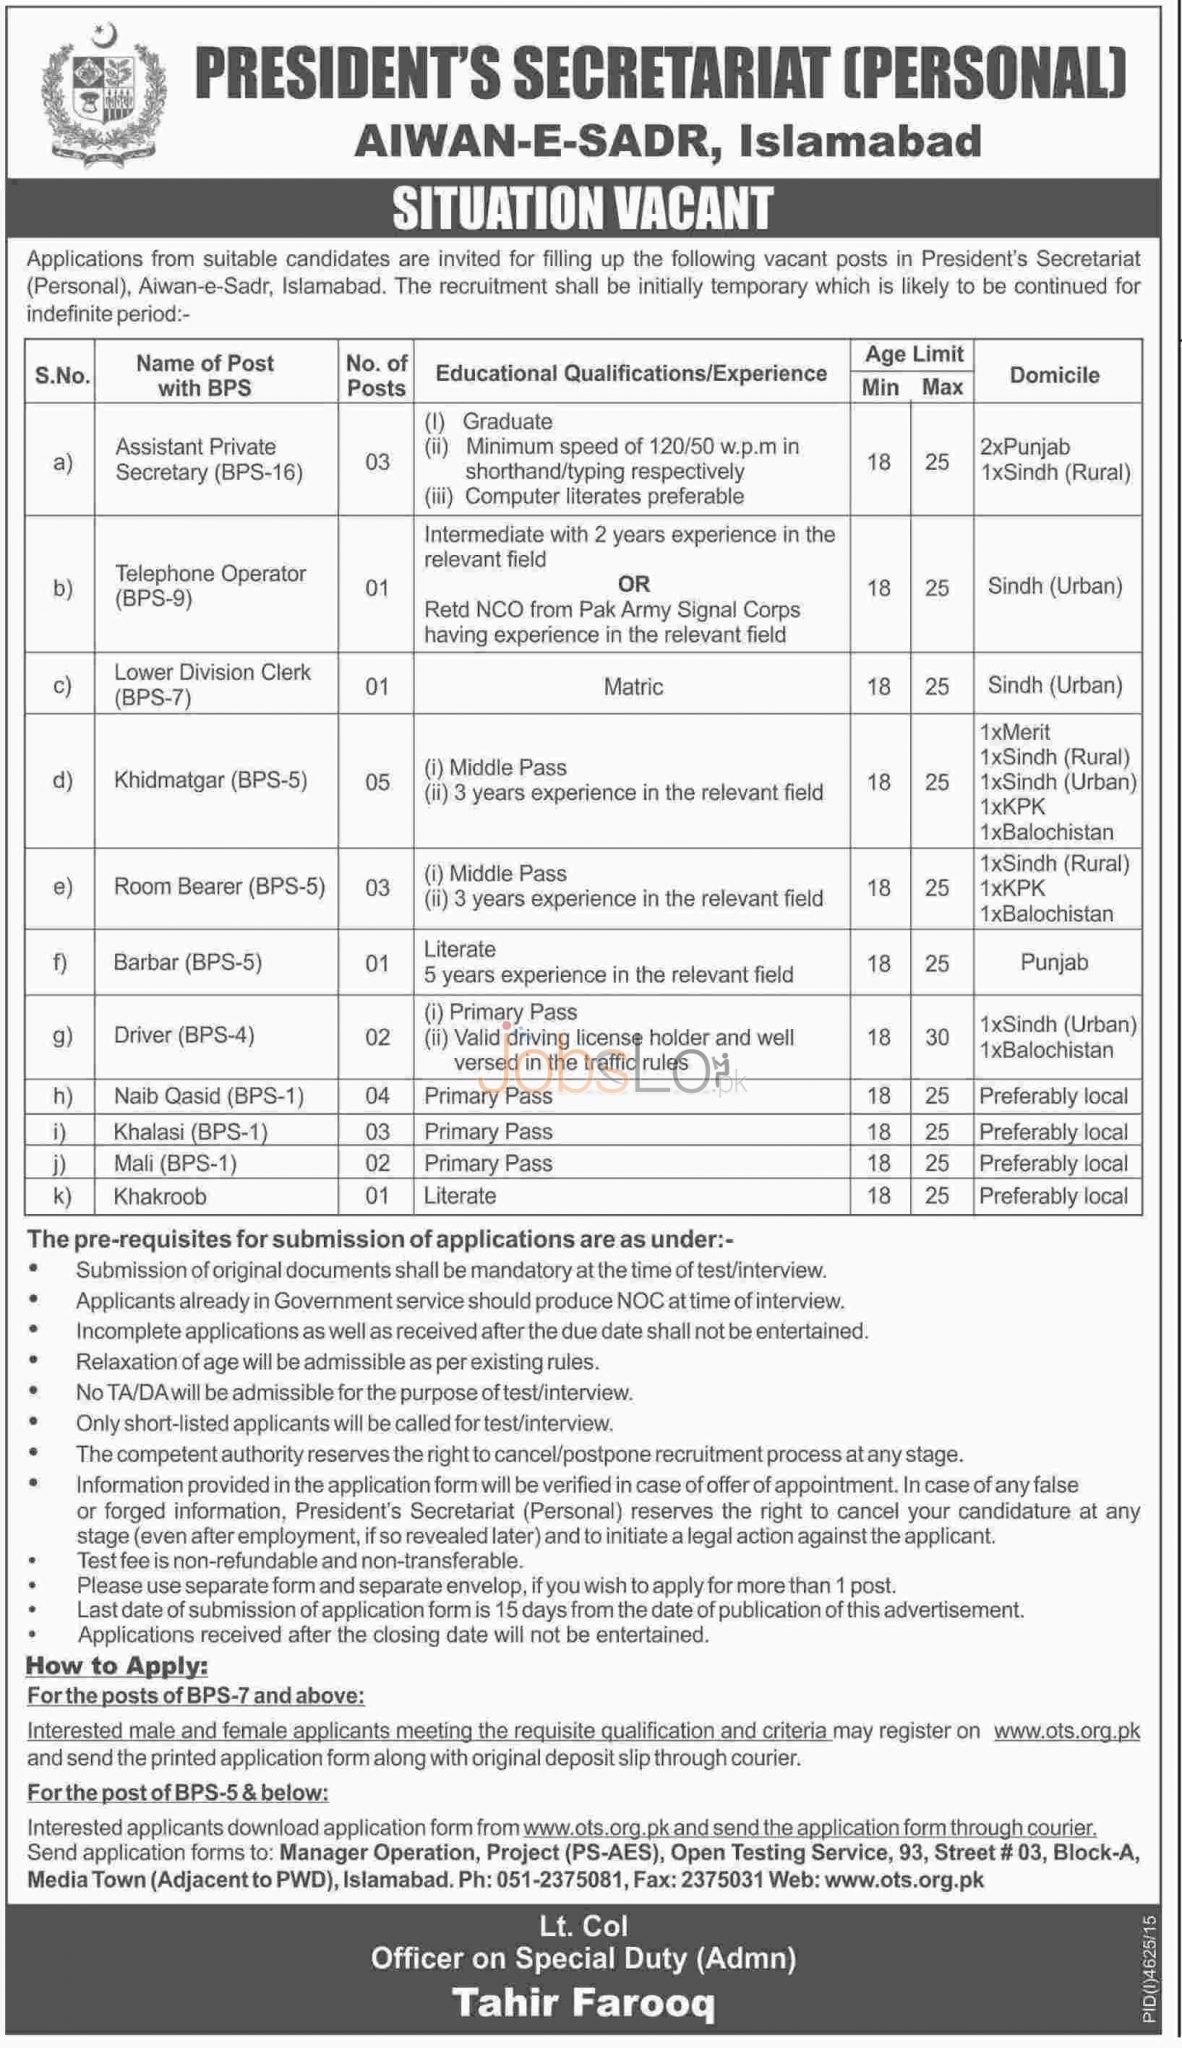 Recruitment Opportunities in Preseident Secretariat 05 March 2016 Islamabad Aiwan-e- Sadar Islamabad OTS Application Form Latest